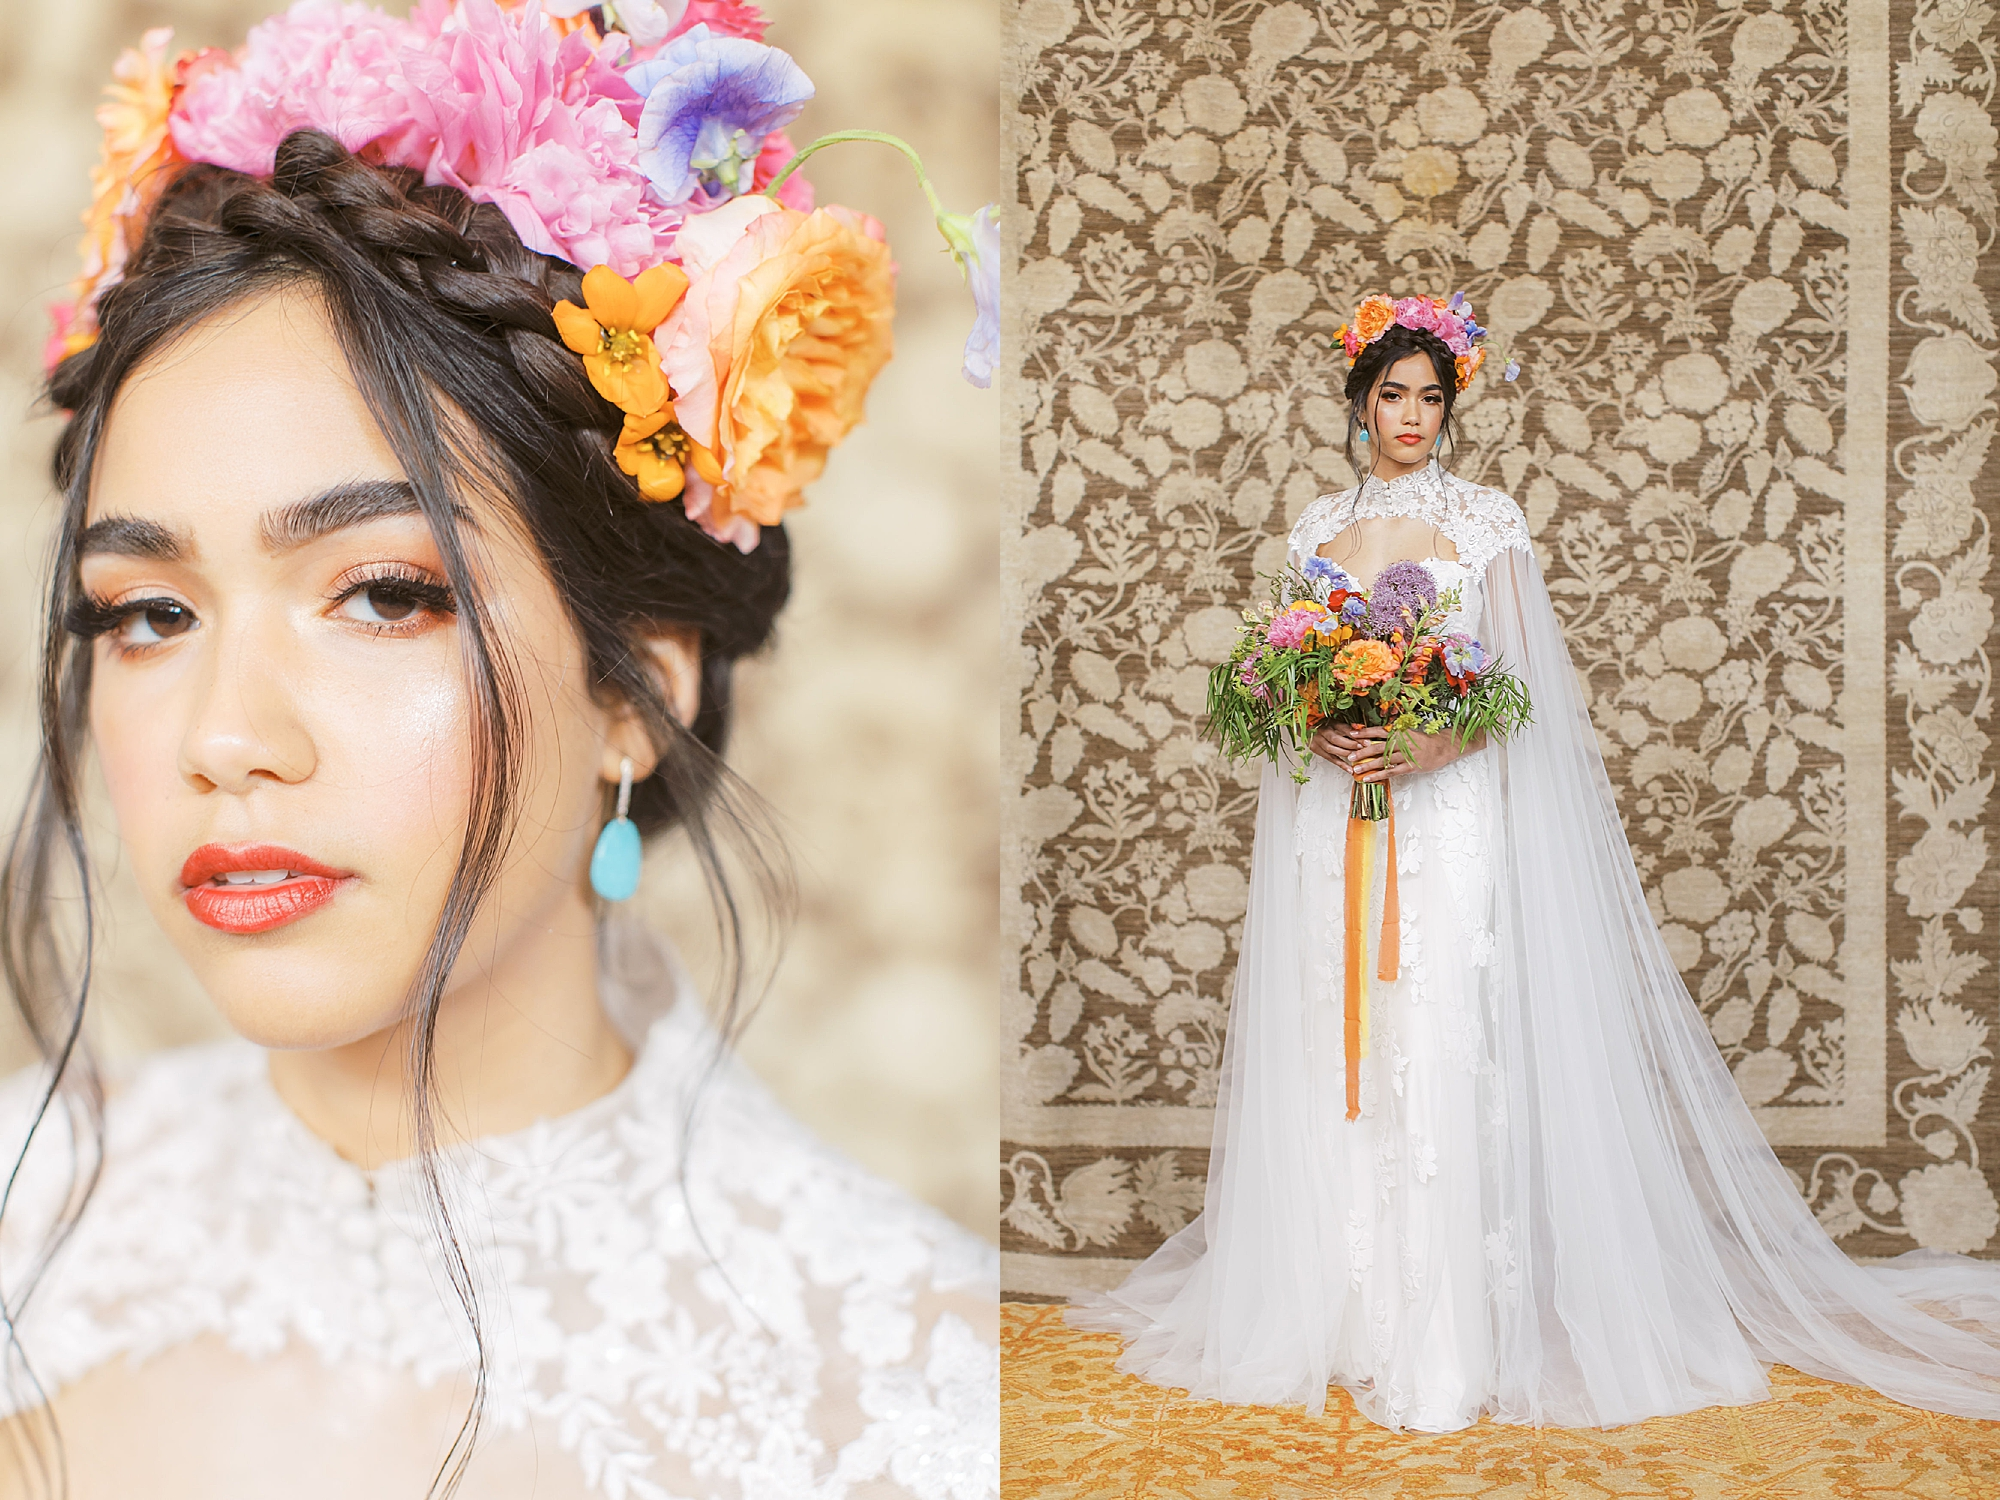 Vibrant and Colorful Frida Kahlo Inspired Wedding Photography by Magdalena Studios 0011